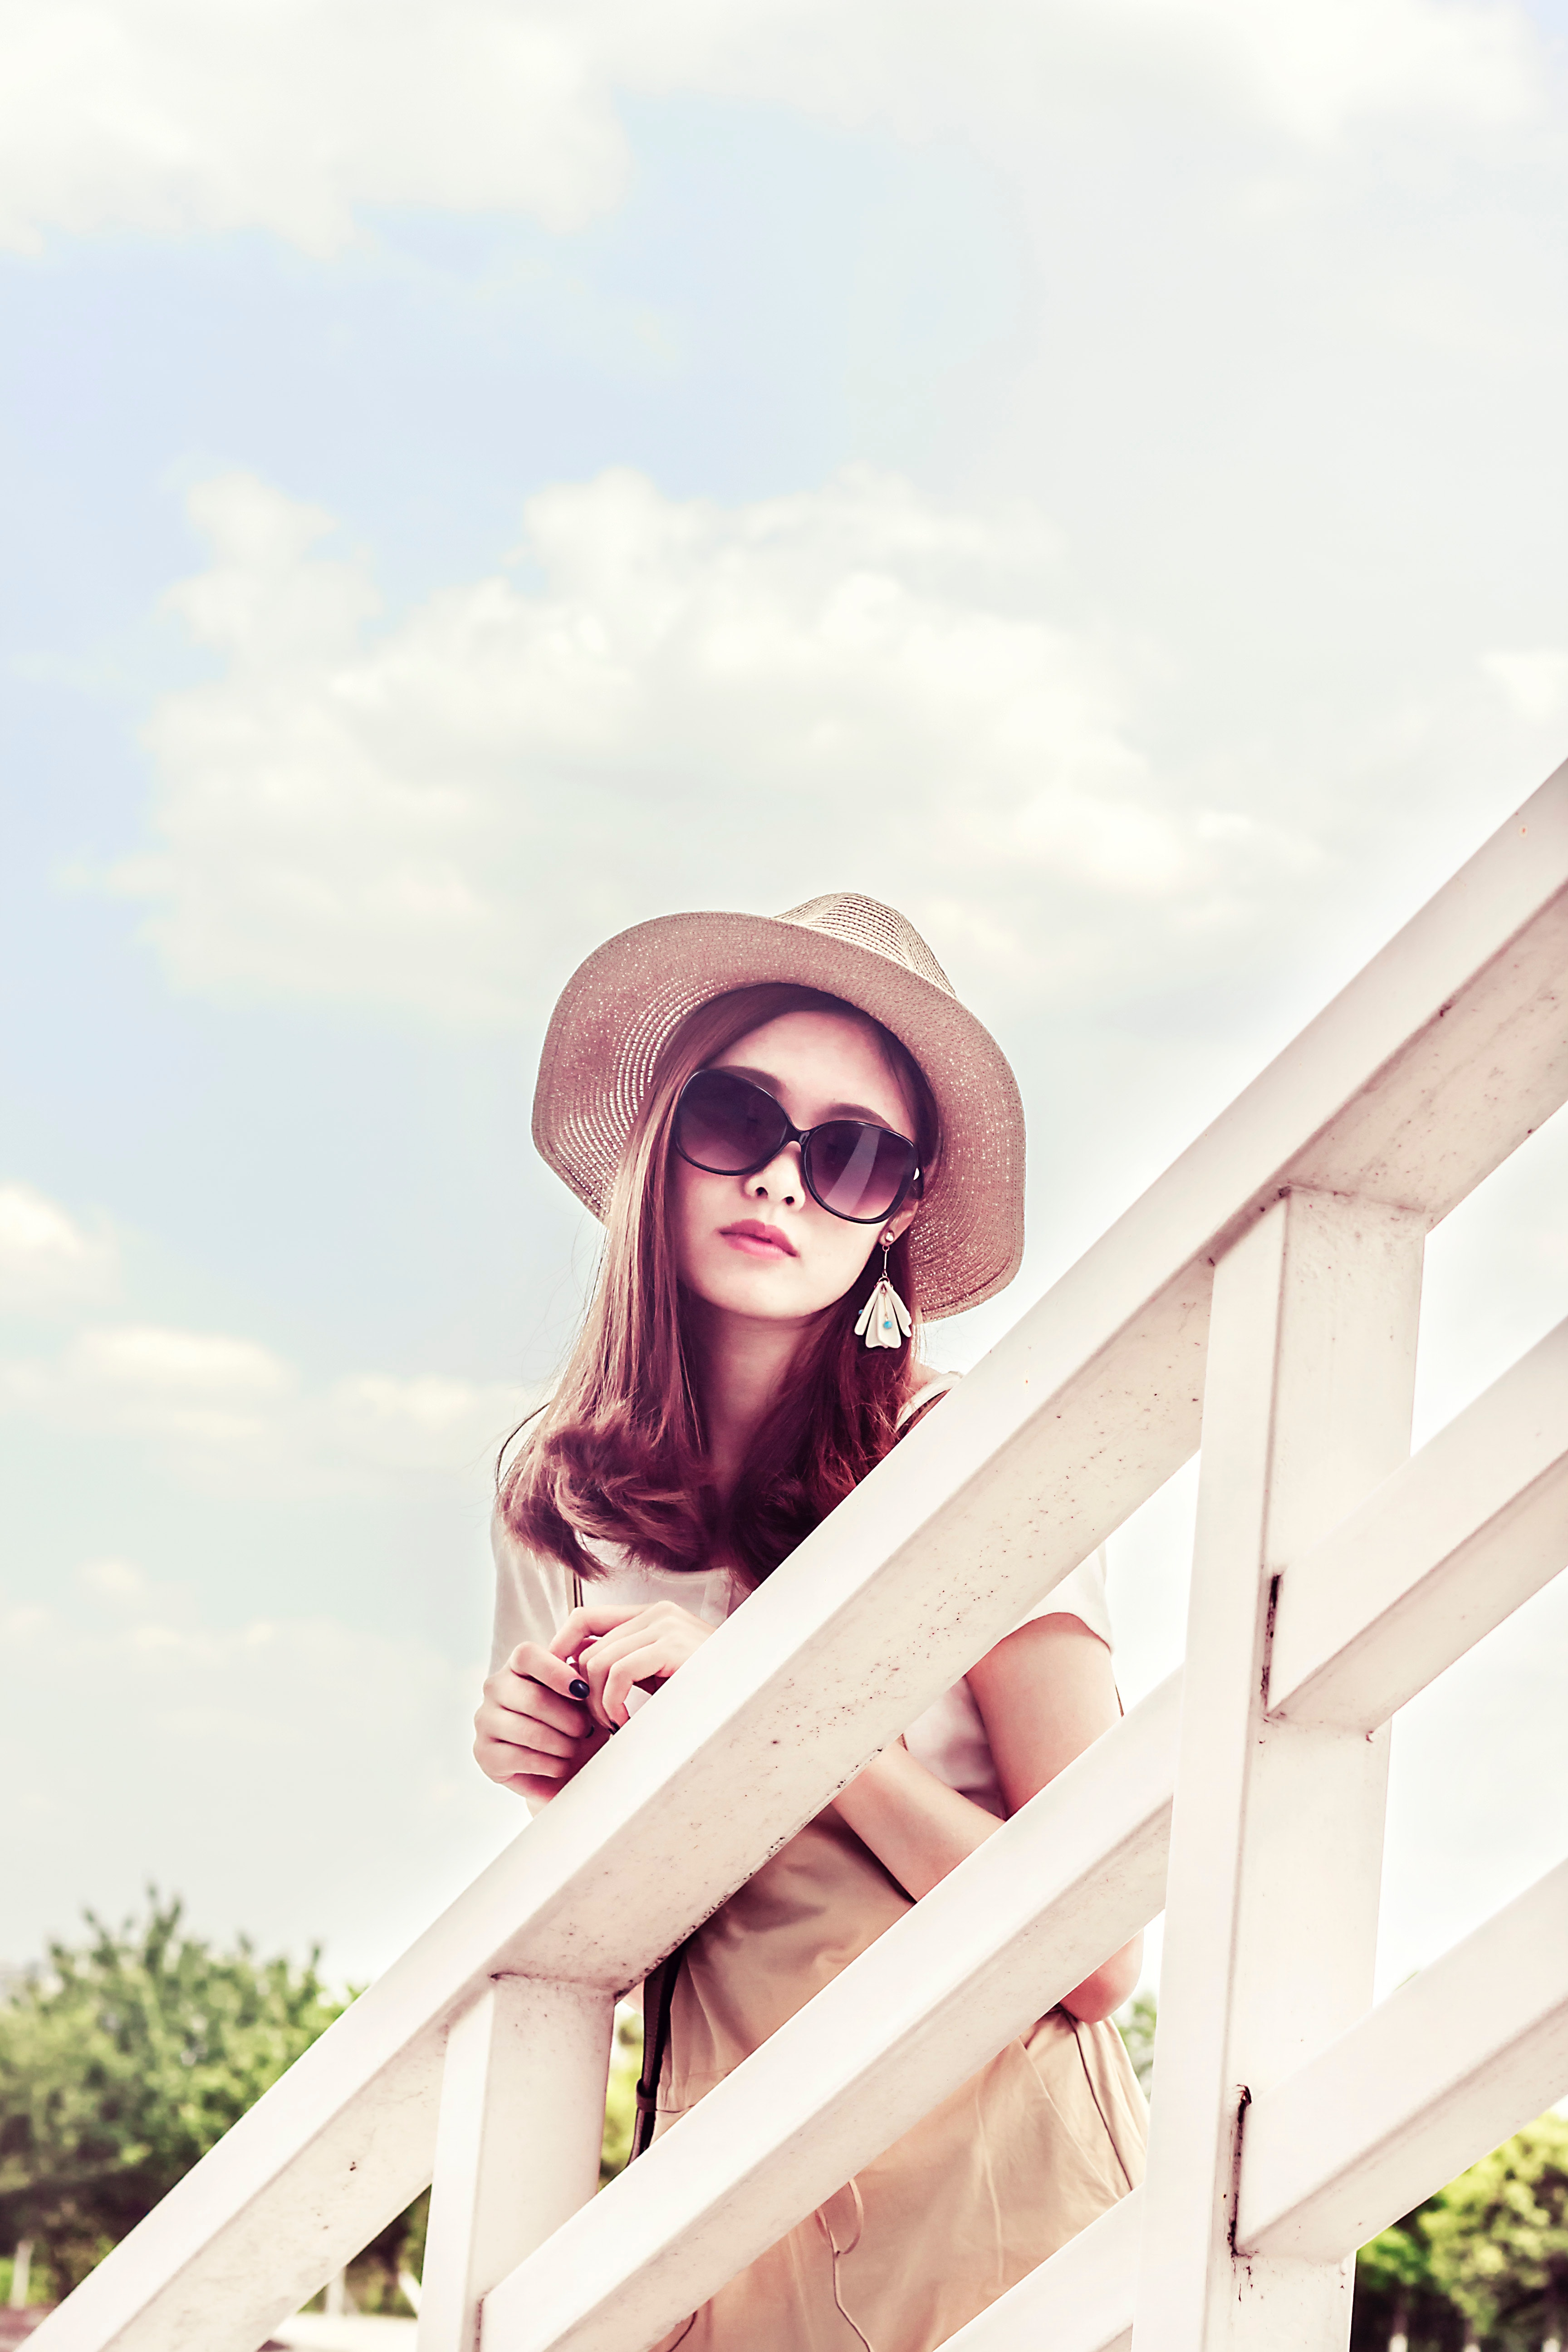 Woman wearing gray sun hat in front of white fence photo